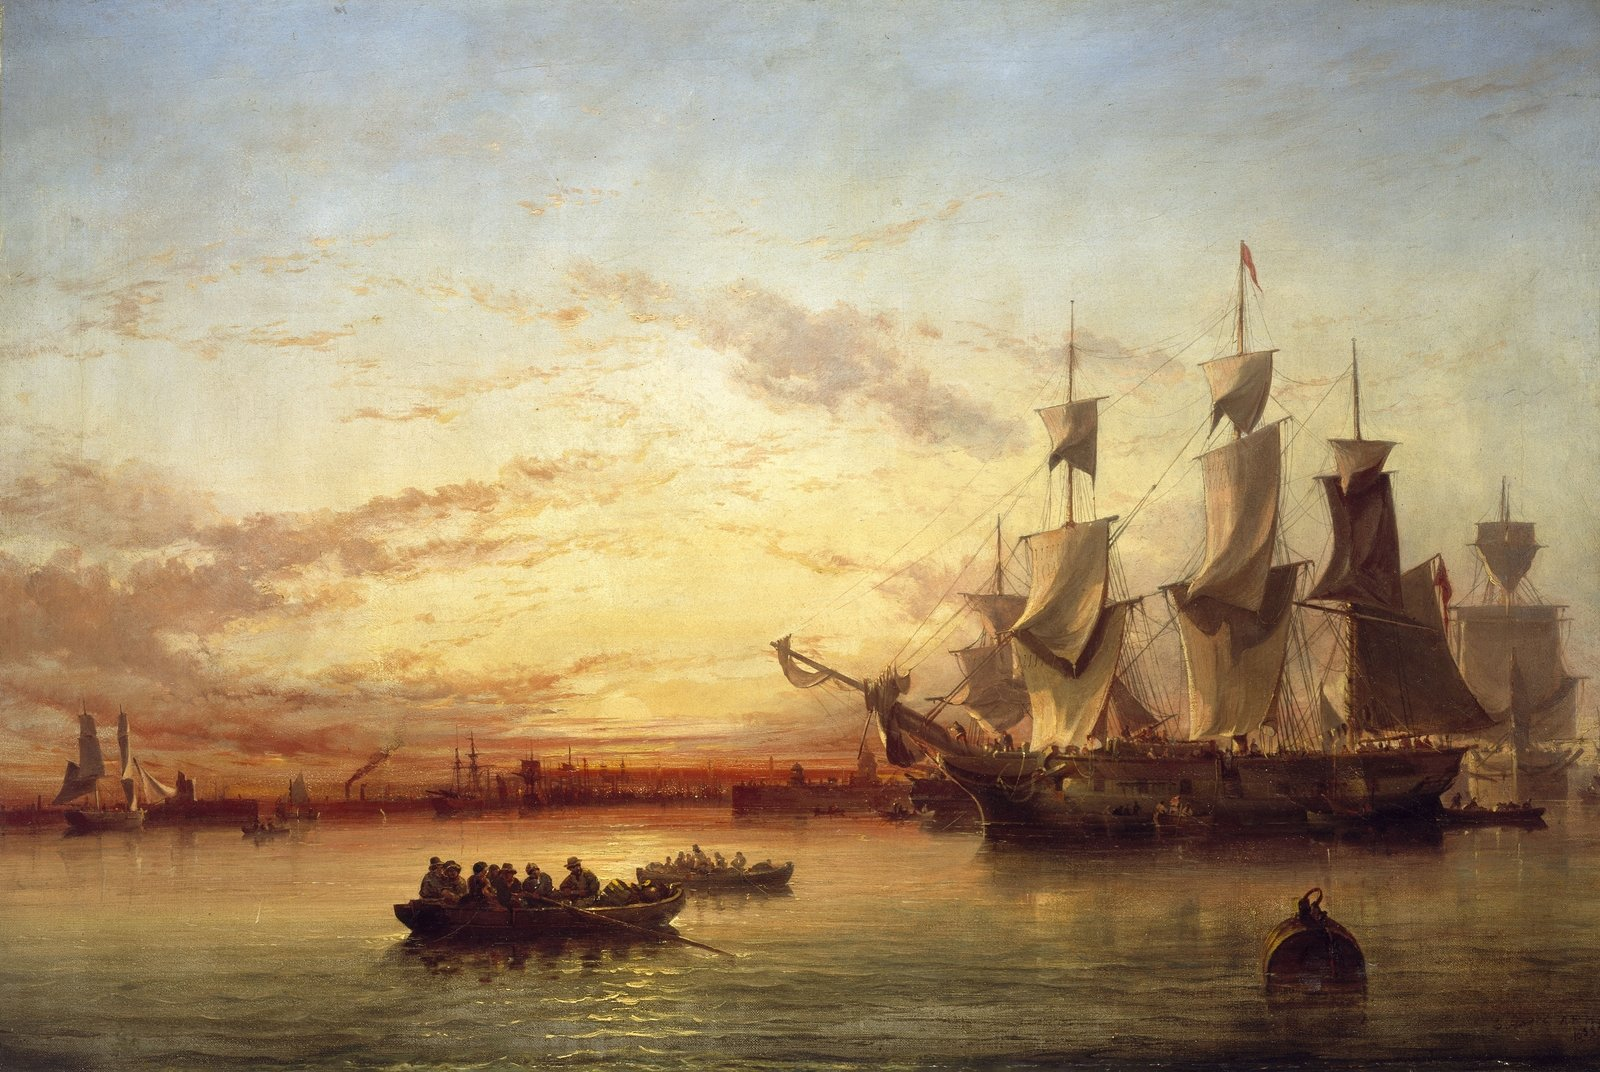 An Emigrant Ship, Dublin Bay, Sunset, 1853, Edwin Hayes, National gallery of Ireland, CC BY-NC-ND